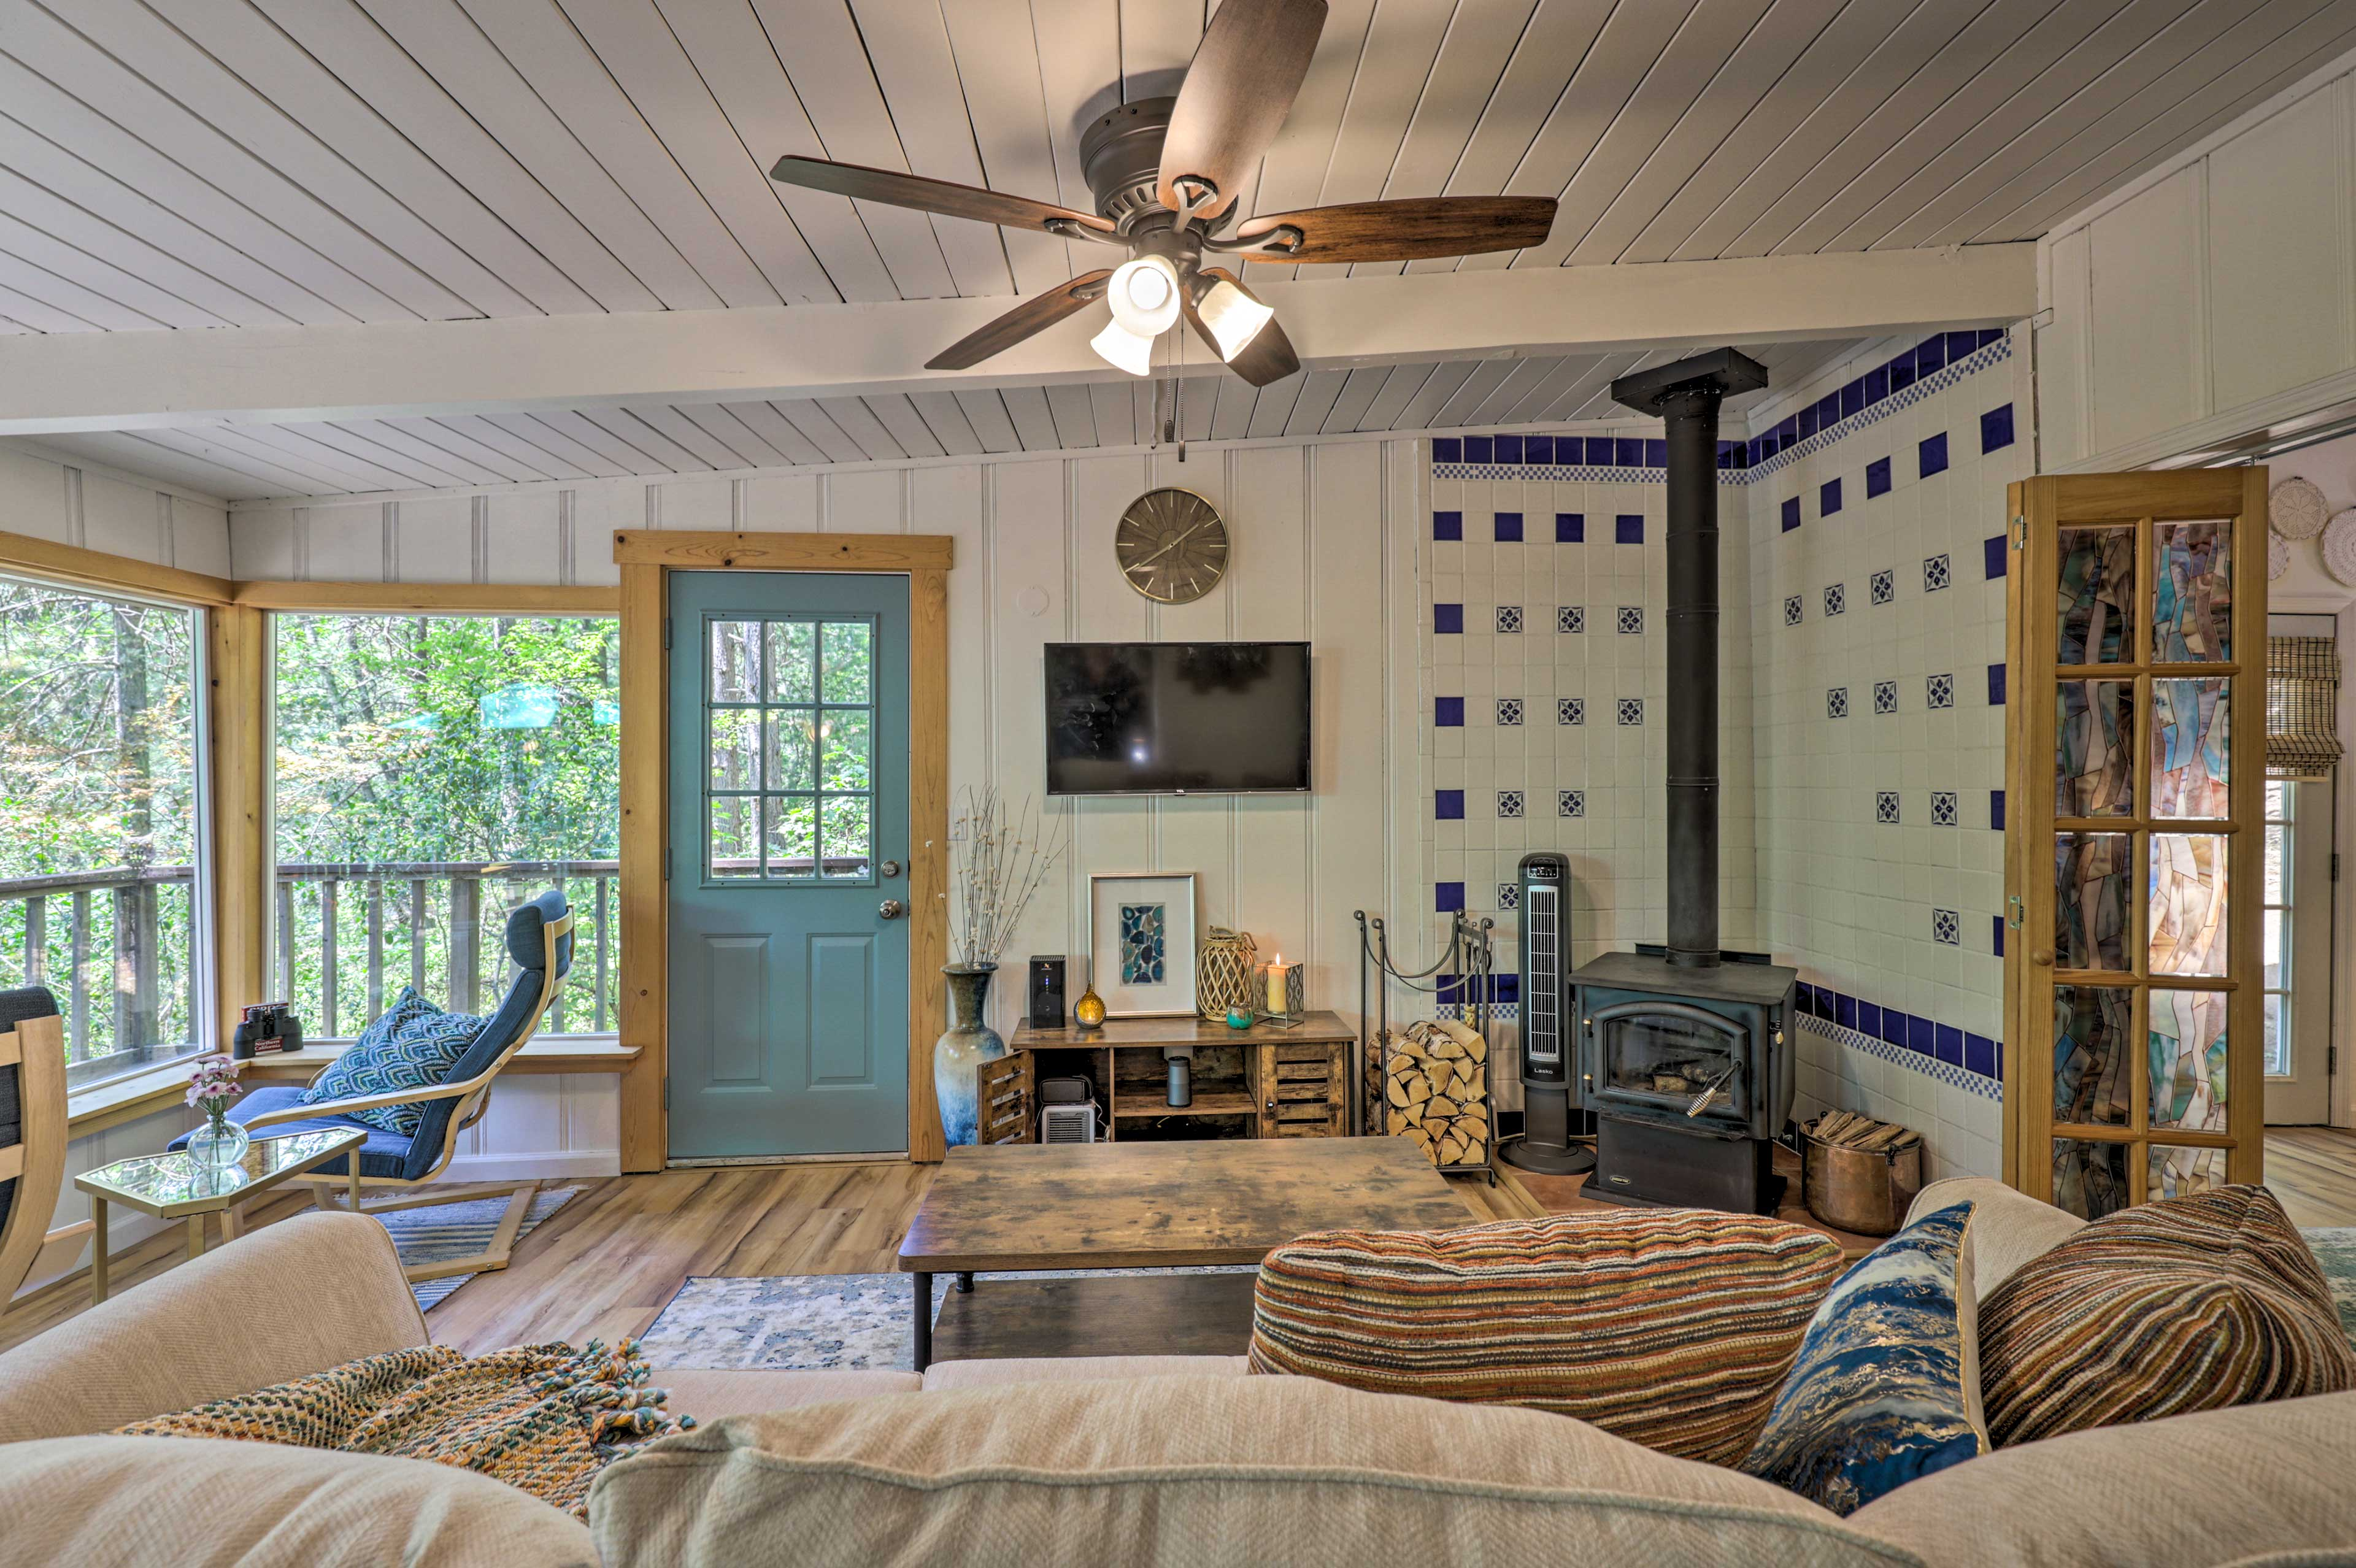 Discover rest and relax here waiting for you when you book this cabin!